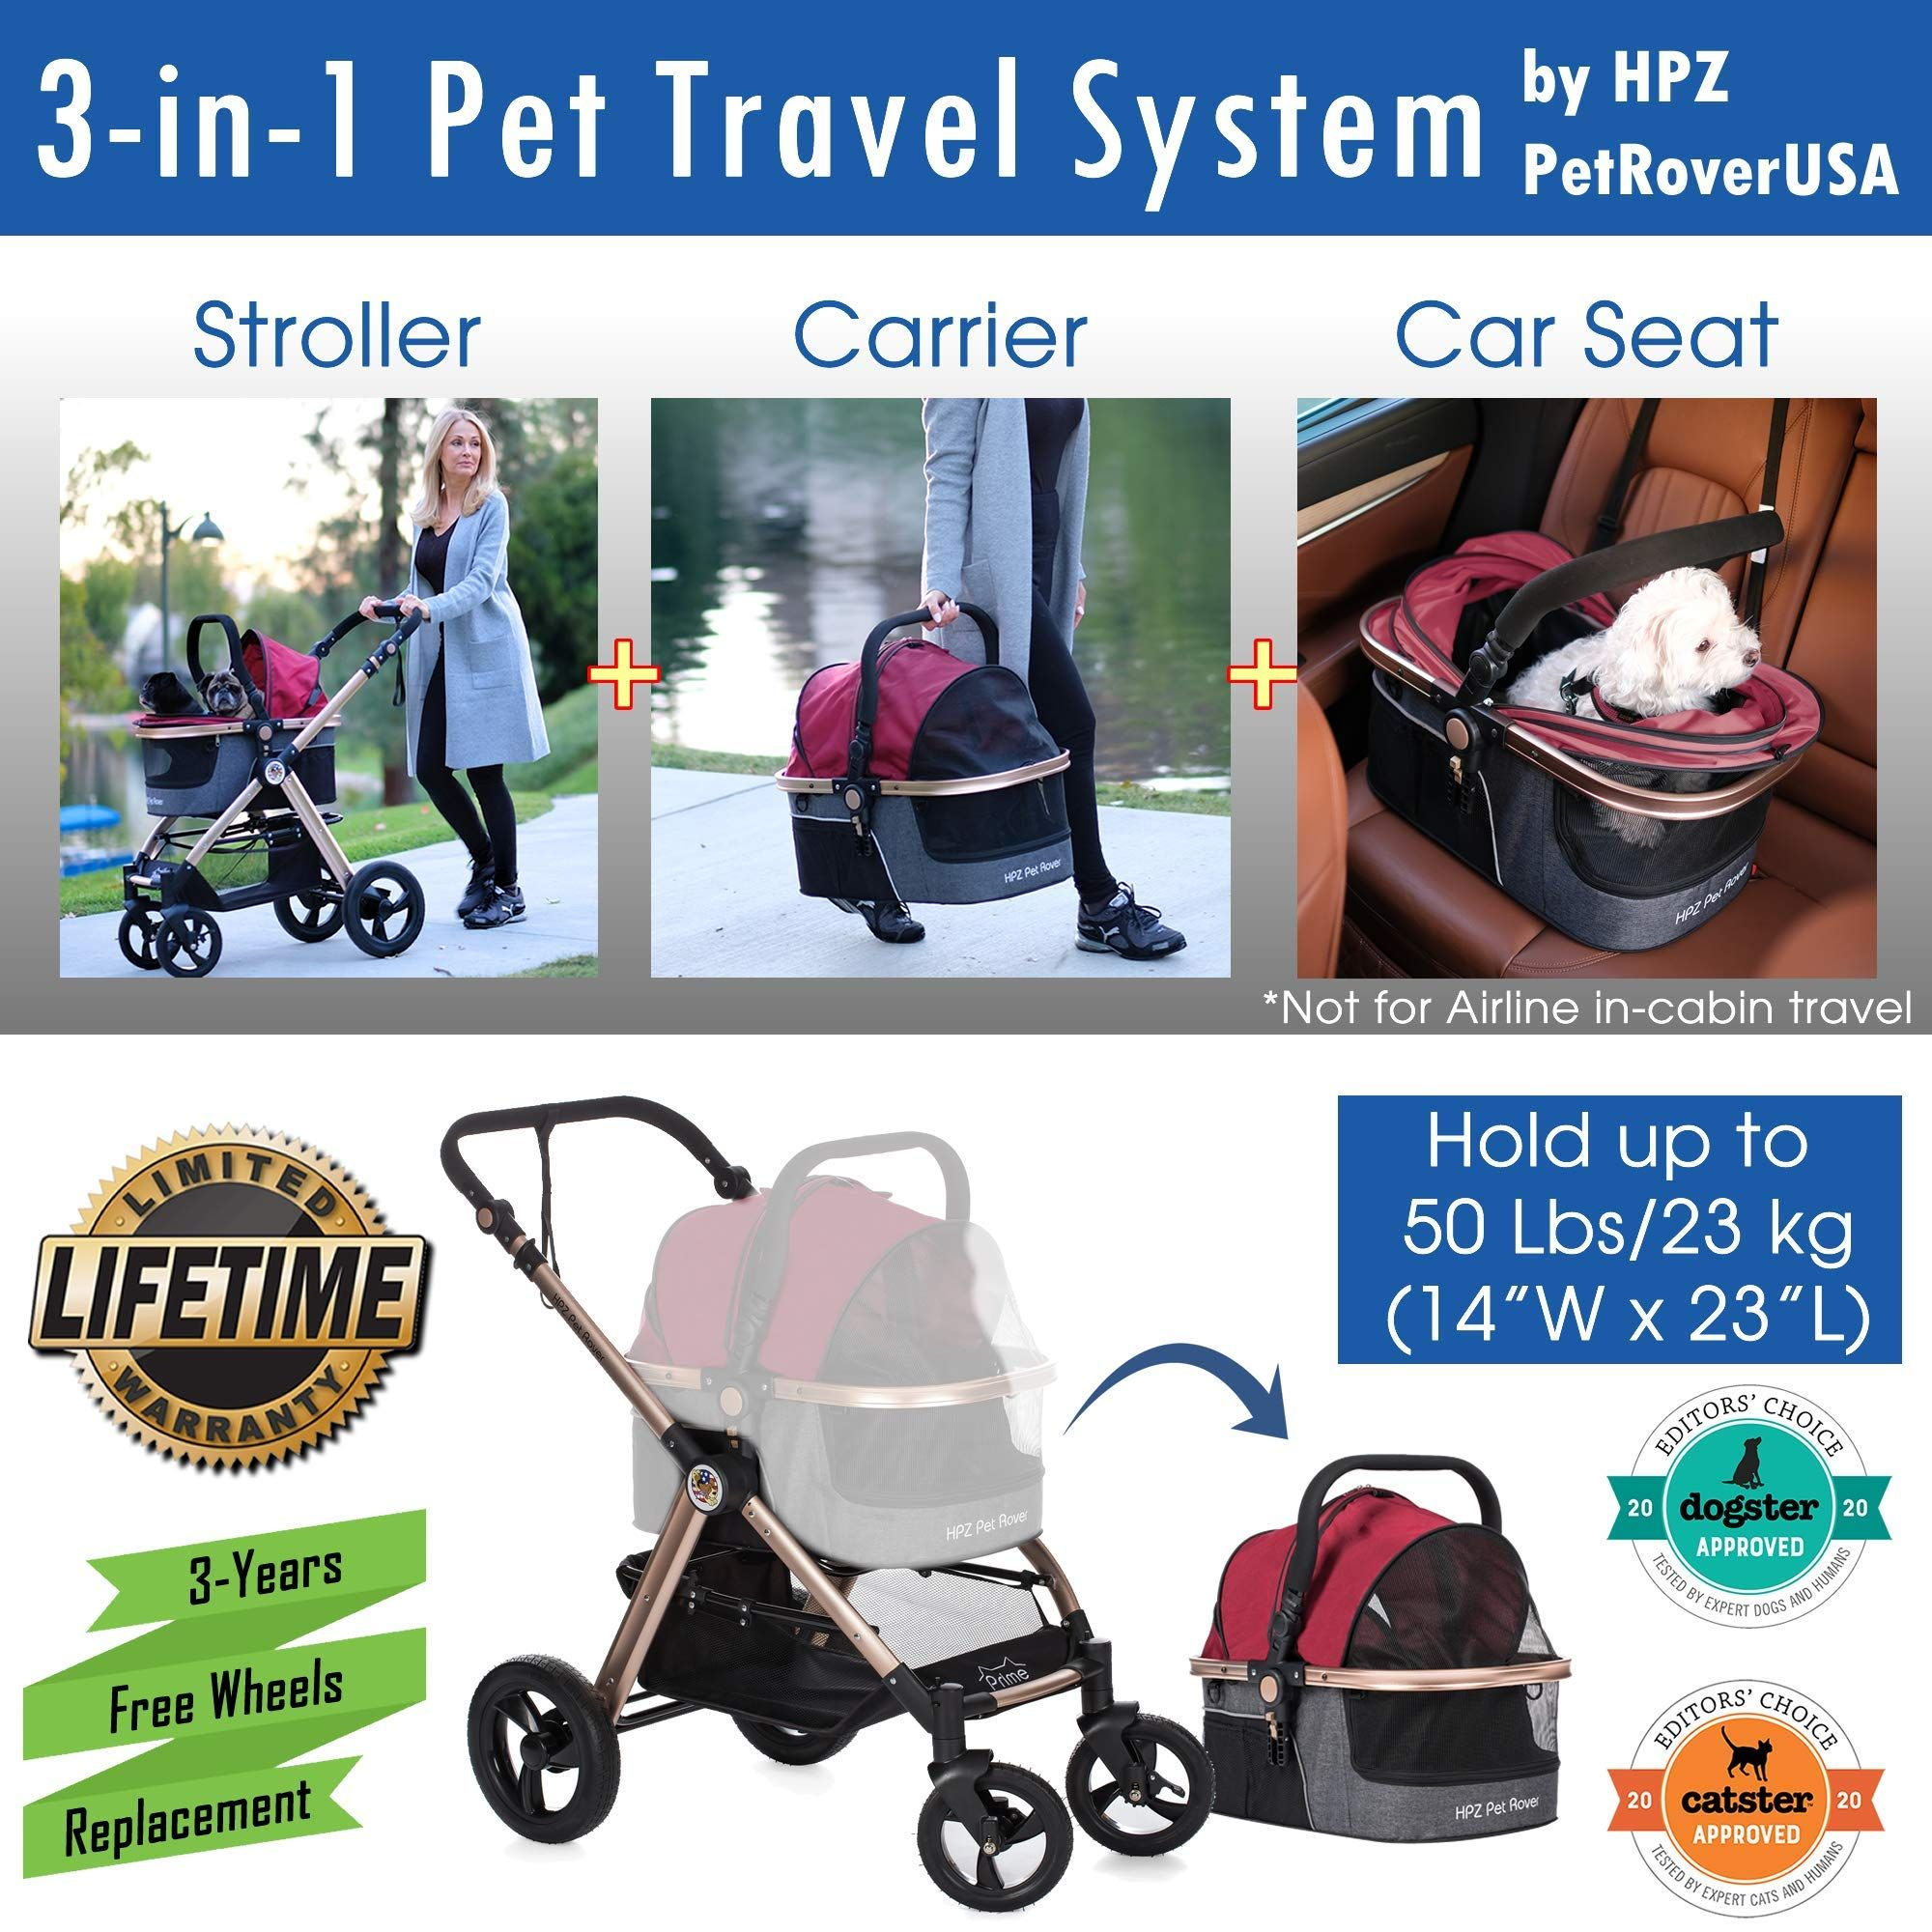 Hpz Pet Rover Prime 3 In 1 Luxury Dog Cat Pet Stroller Travel Carrier Car Seat Stroller W Detach Carrier Pump Free In 2020 With Images Pet Stroller Luxury Dog Travel Stroller